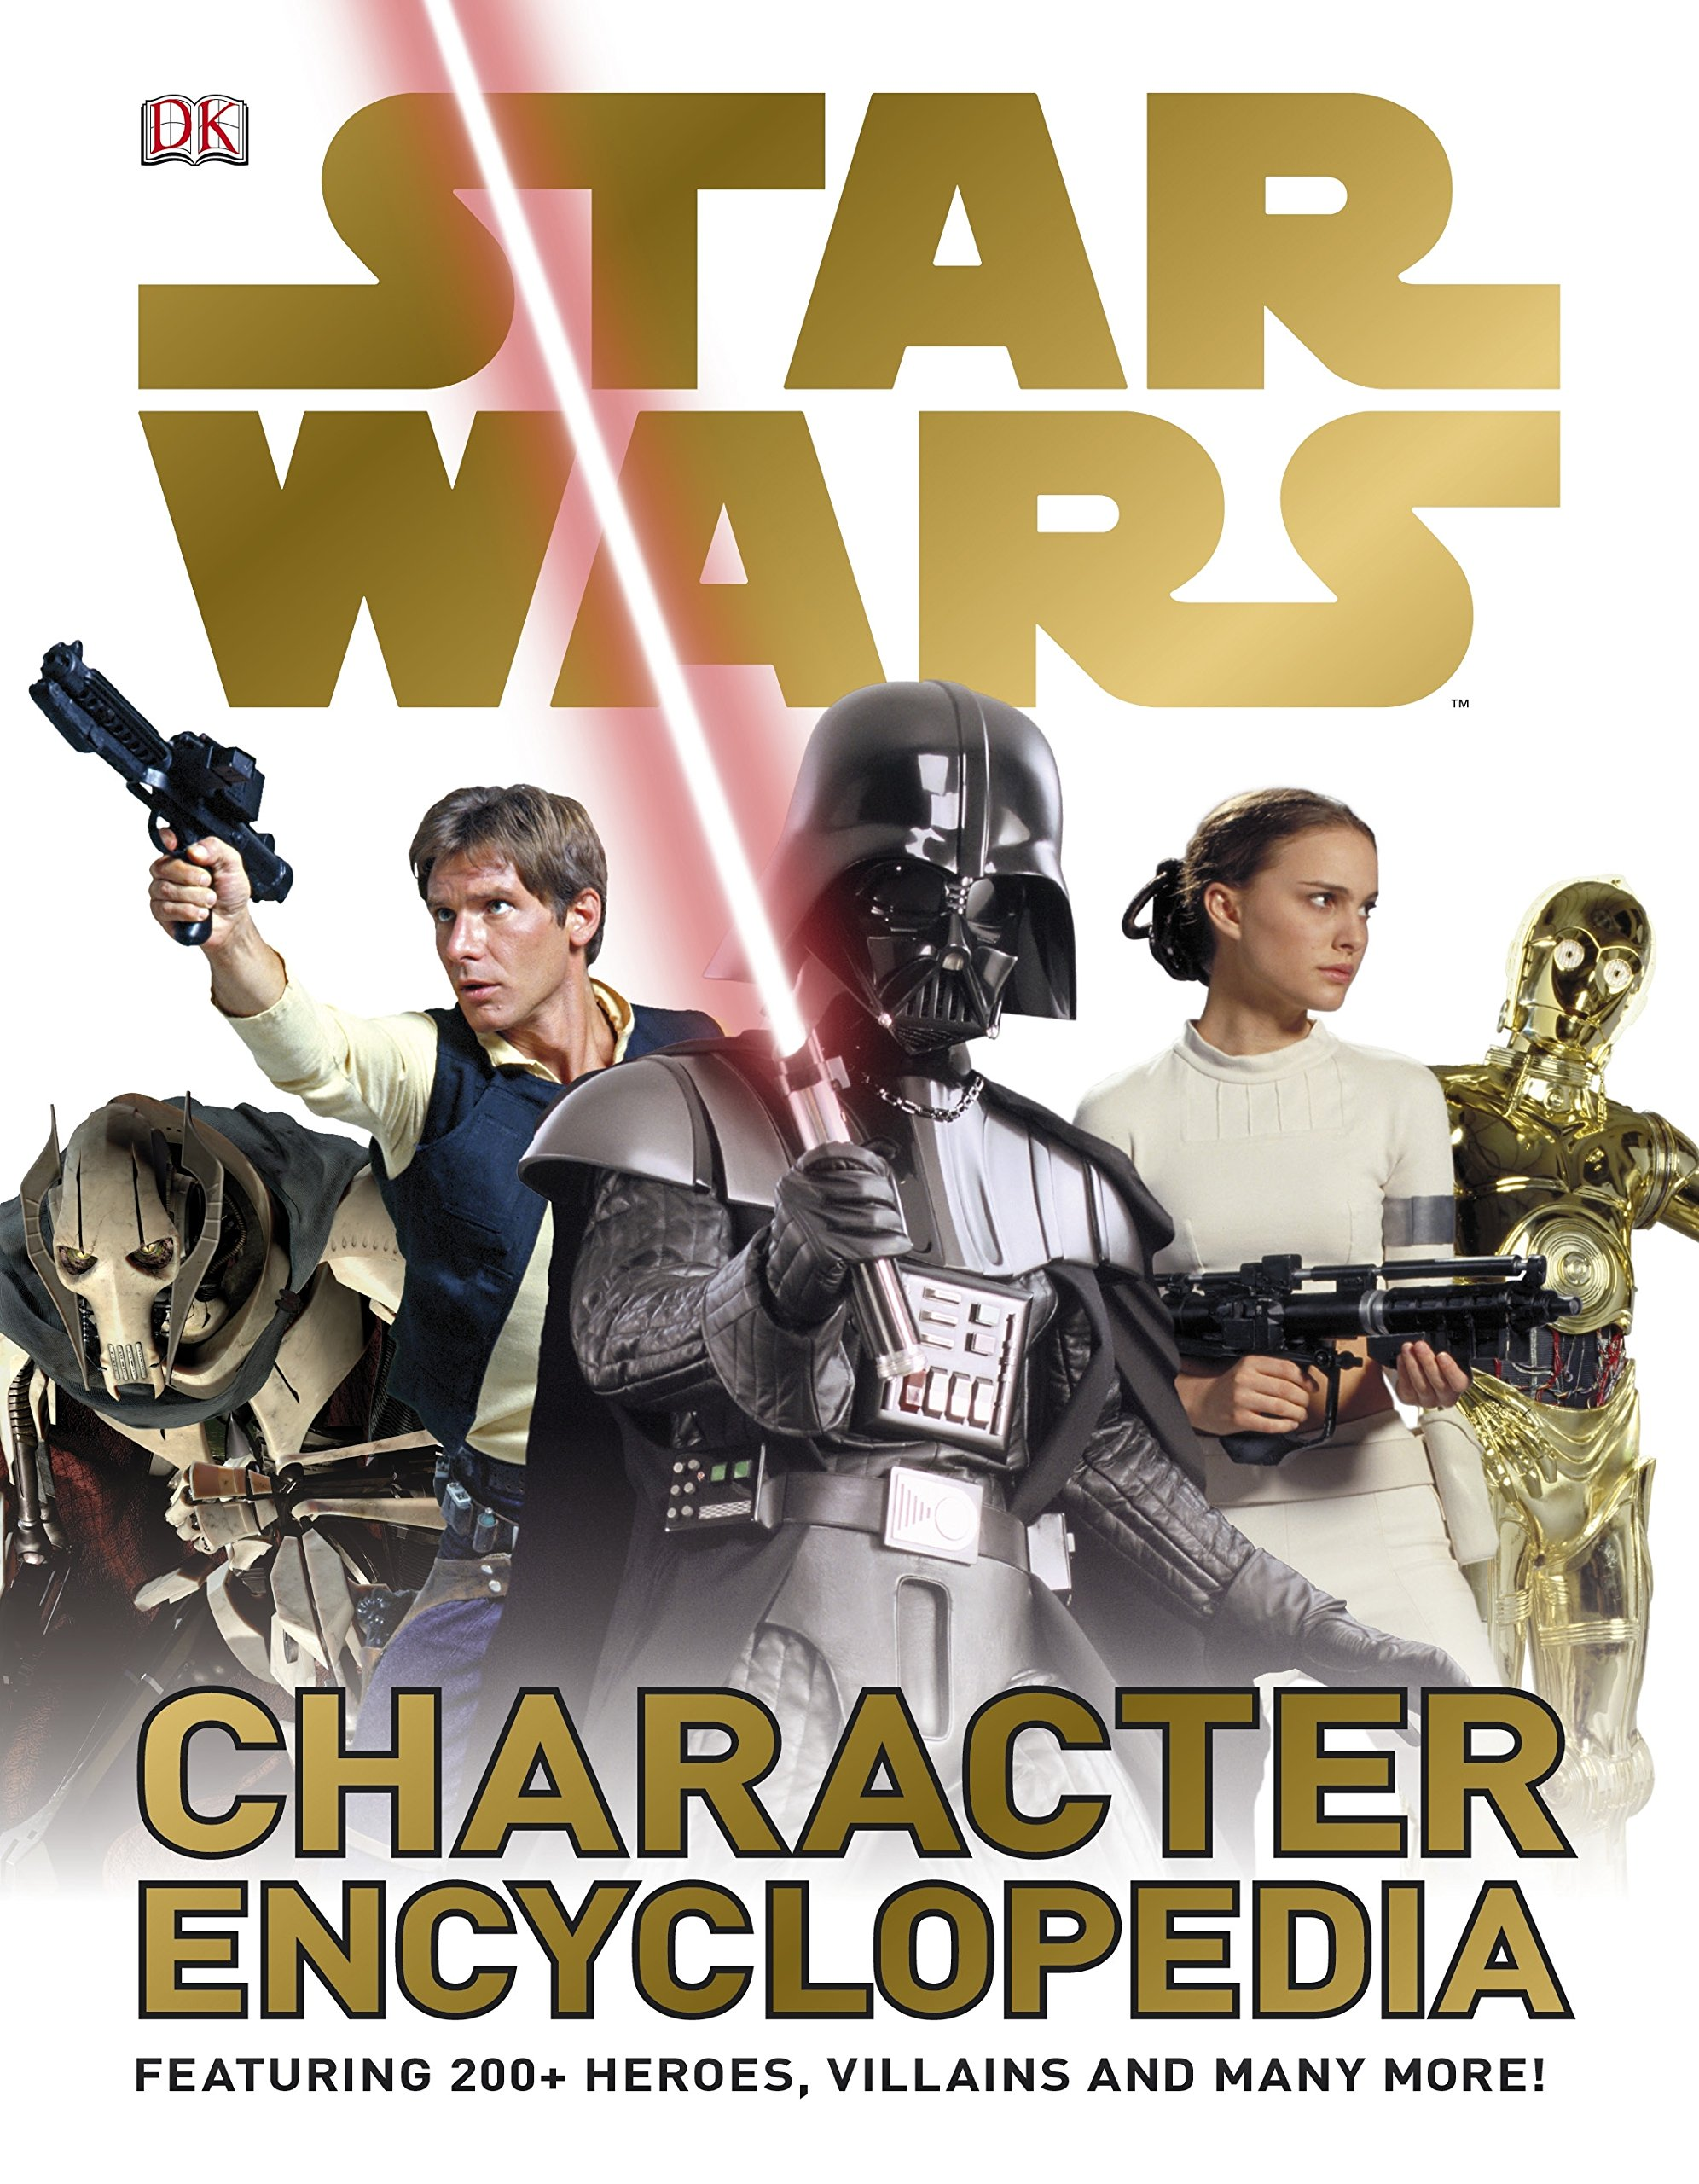 Star Wars Classic Visual Dictionary of Characters.